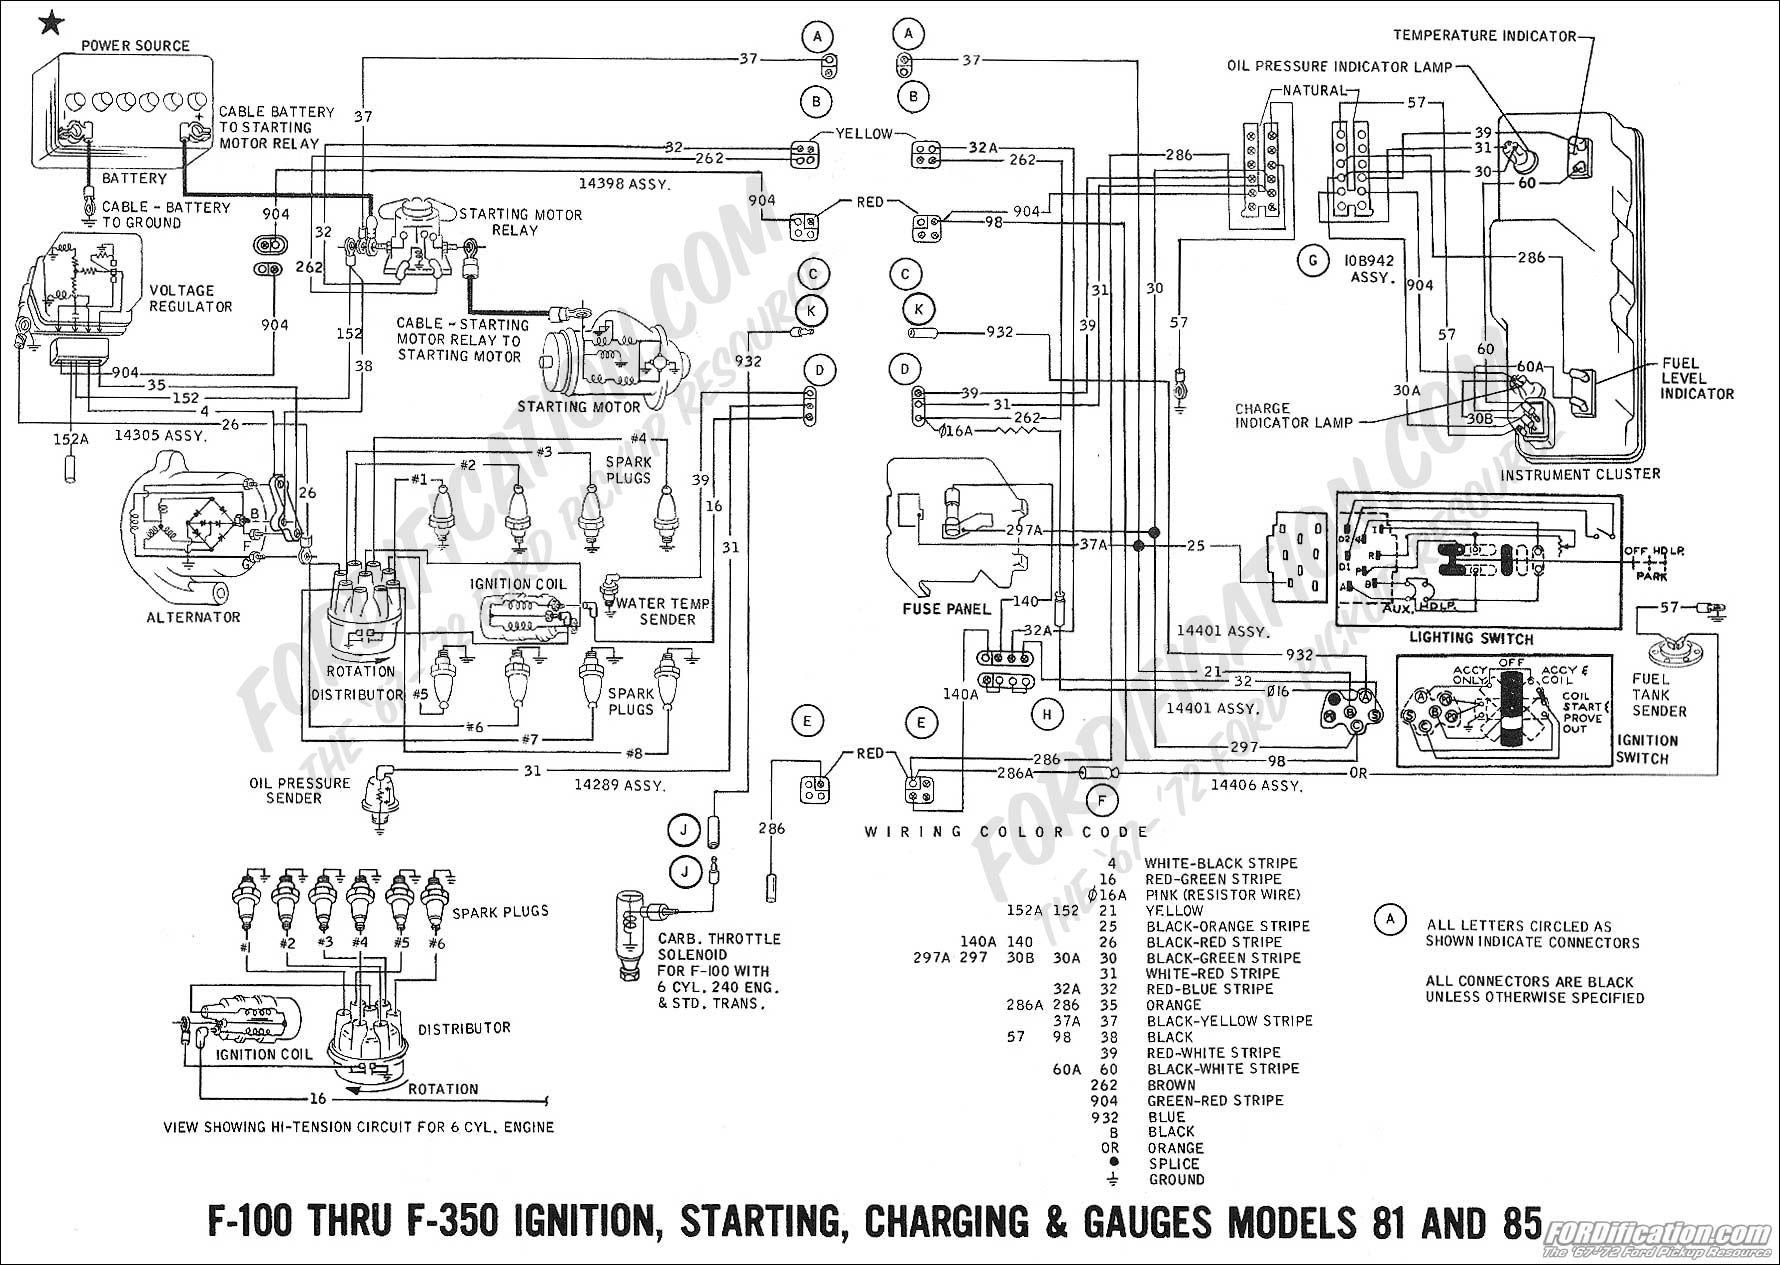 1998 Mustang V6 Fuse Diagram Wiring Library 2002 Ford 1968 Box Schematic Enthusiast Rh Rasalibre Co 1995